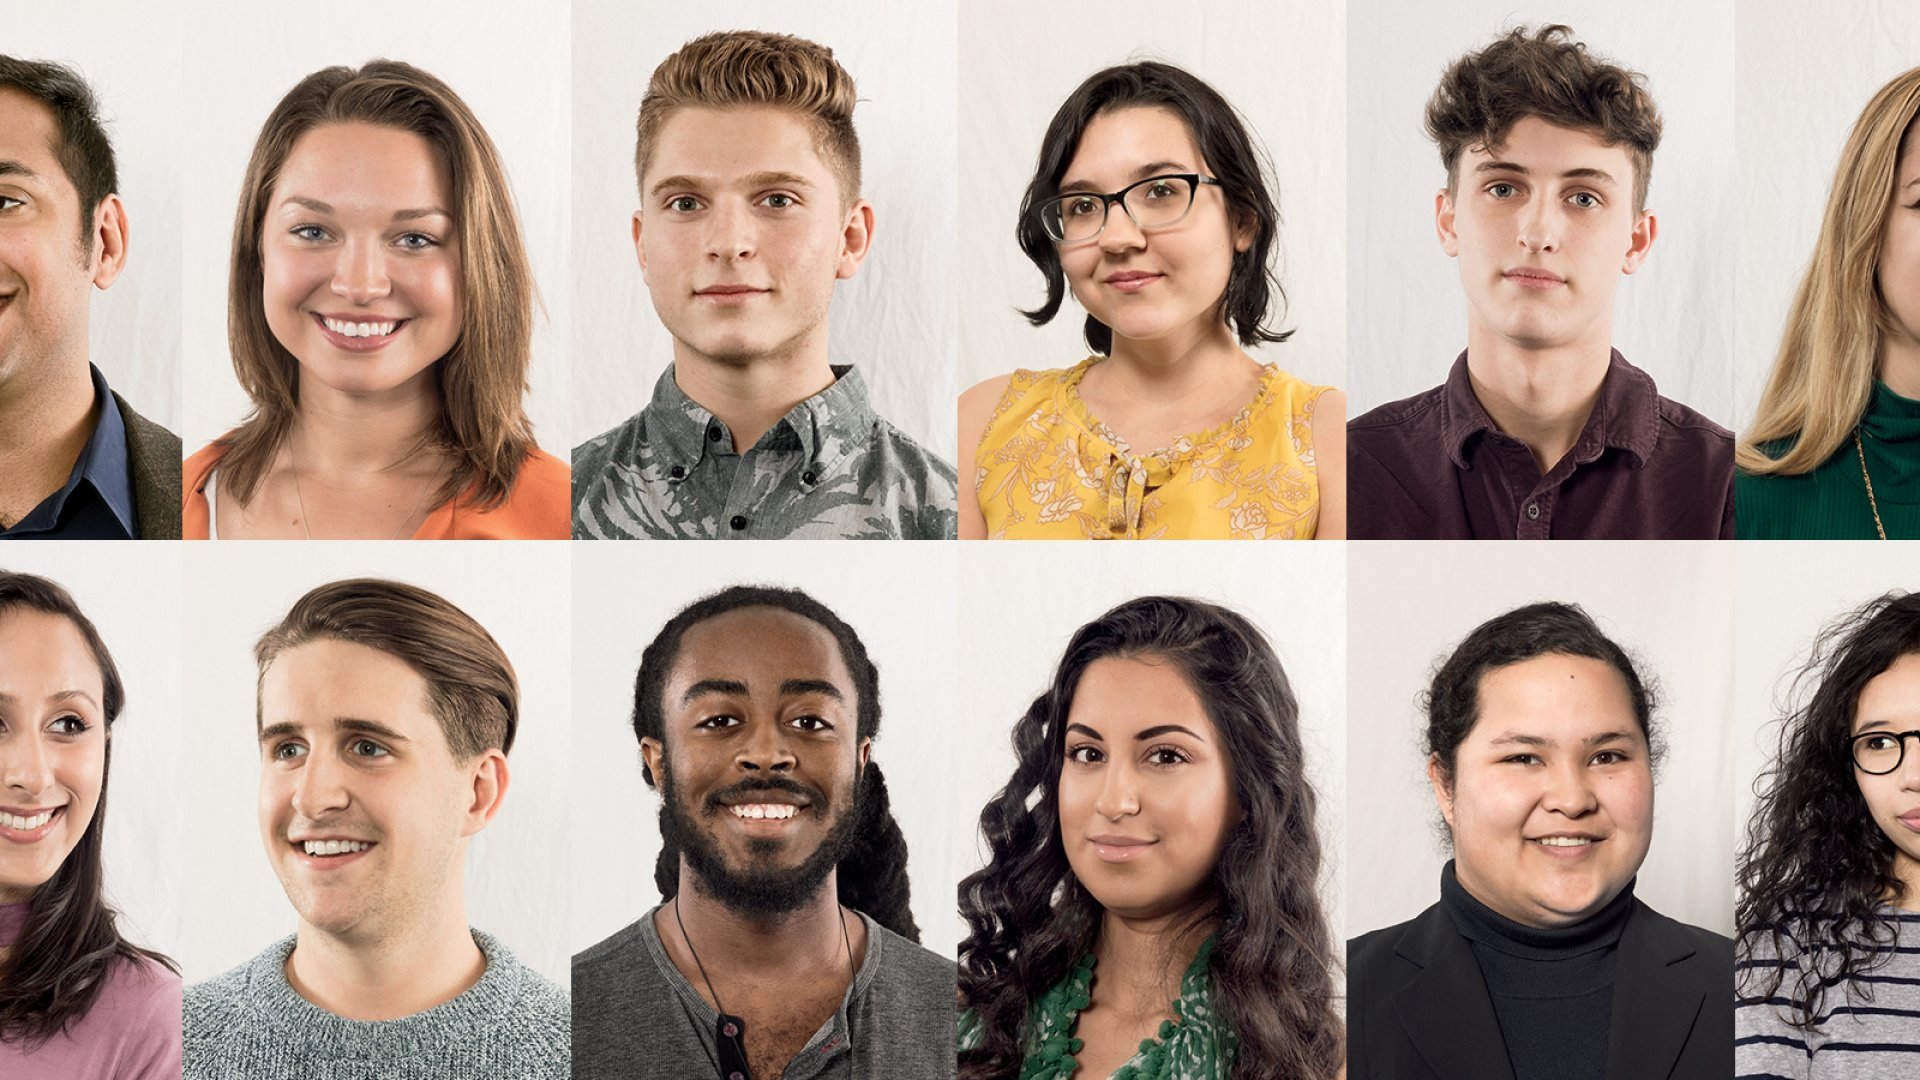 Pictured here are 12 of the first 55 students at MissionU, which runs a yearlong career training program that emphasizes skills as much as diversity. Forty-two percent of its first class of students–who hope to one day work for the school's partner companies–are African American, Hispanic, or Native American.